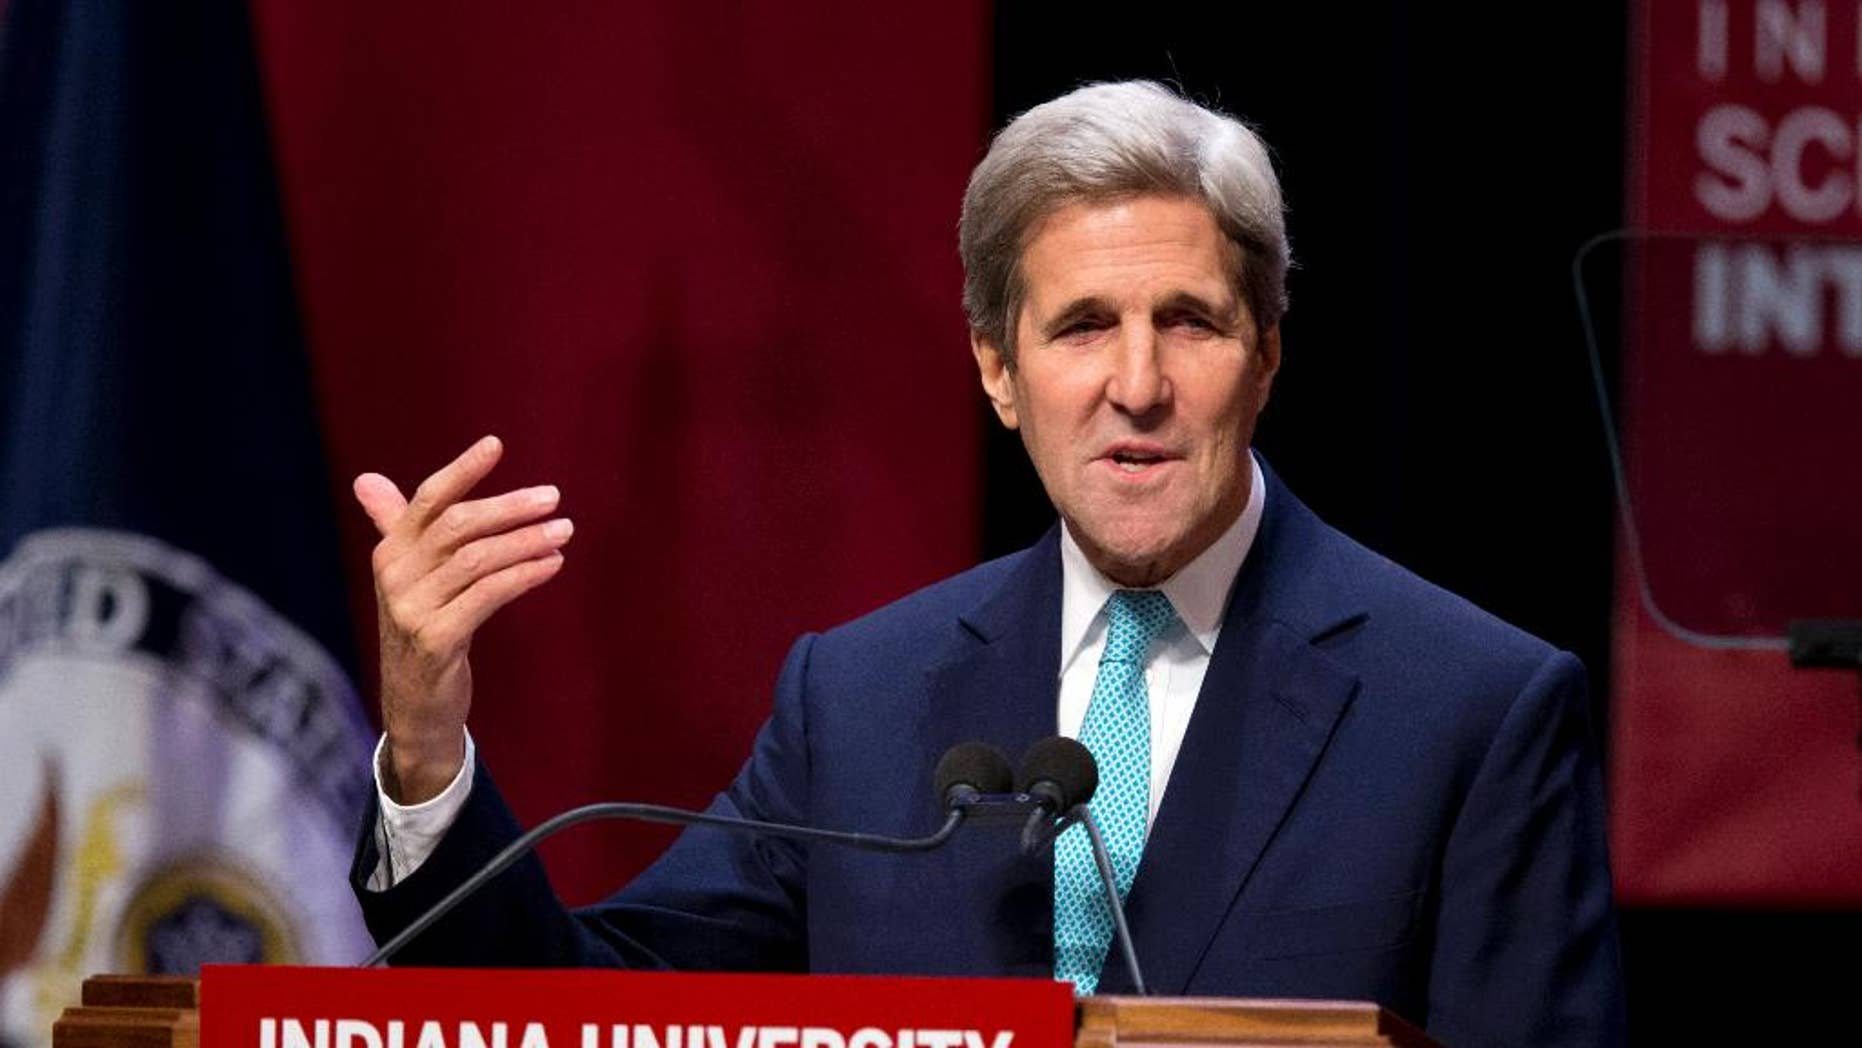 Secretary of State John Kerry talks about foreign policy priorities during a speech at Indiana University in Bloomington, Ind., Thursday, Oct. 15, 2015. Kerry spoke to mark the opening of the new building for IU's School of Global and International Studies. (AP Photo/Michael Conroy)